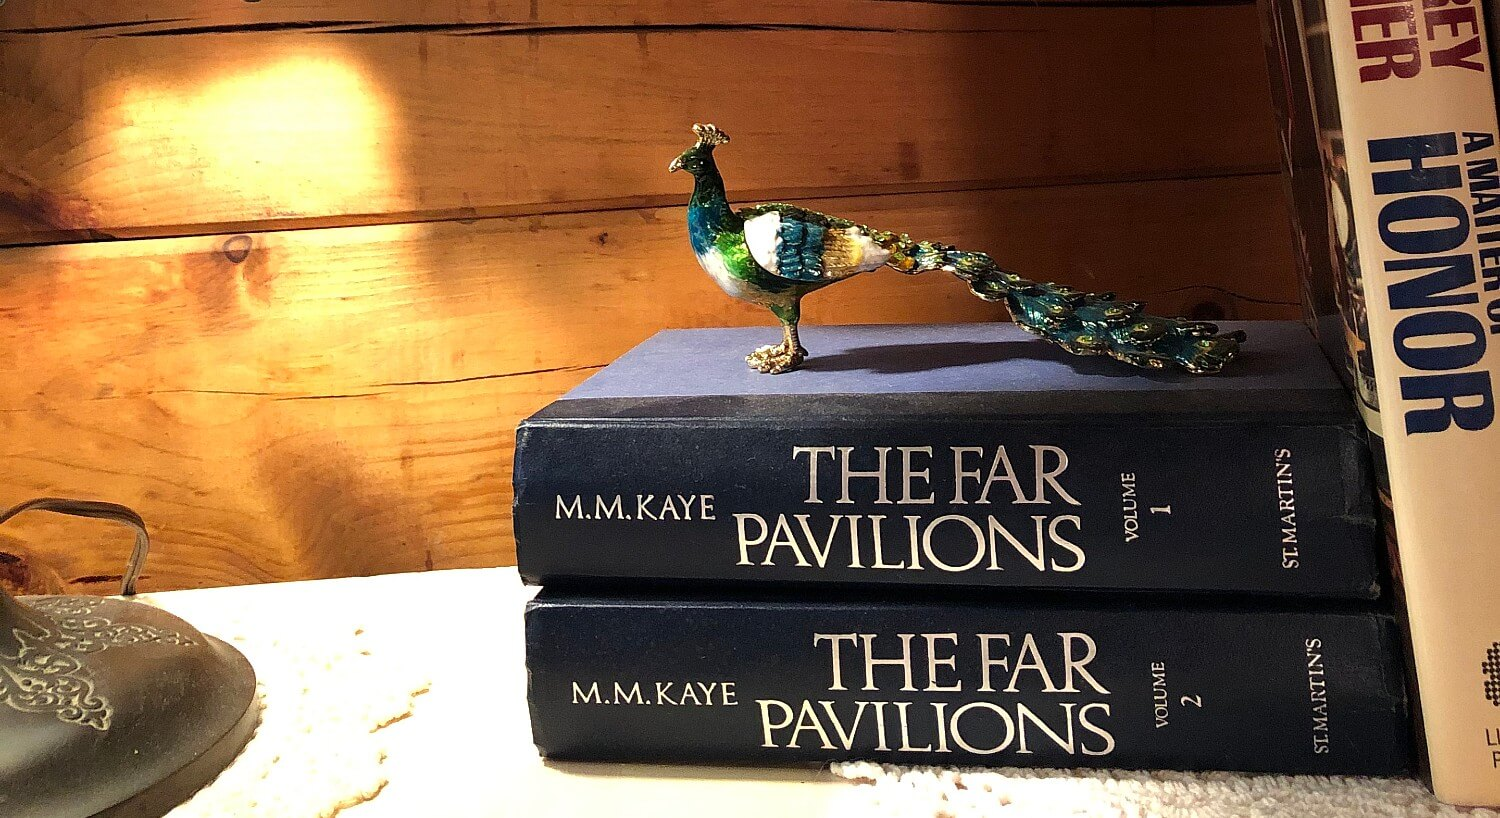 Decorative peacock sitting on two blue hardcover books with white text on a shelf next to a metal lamp base